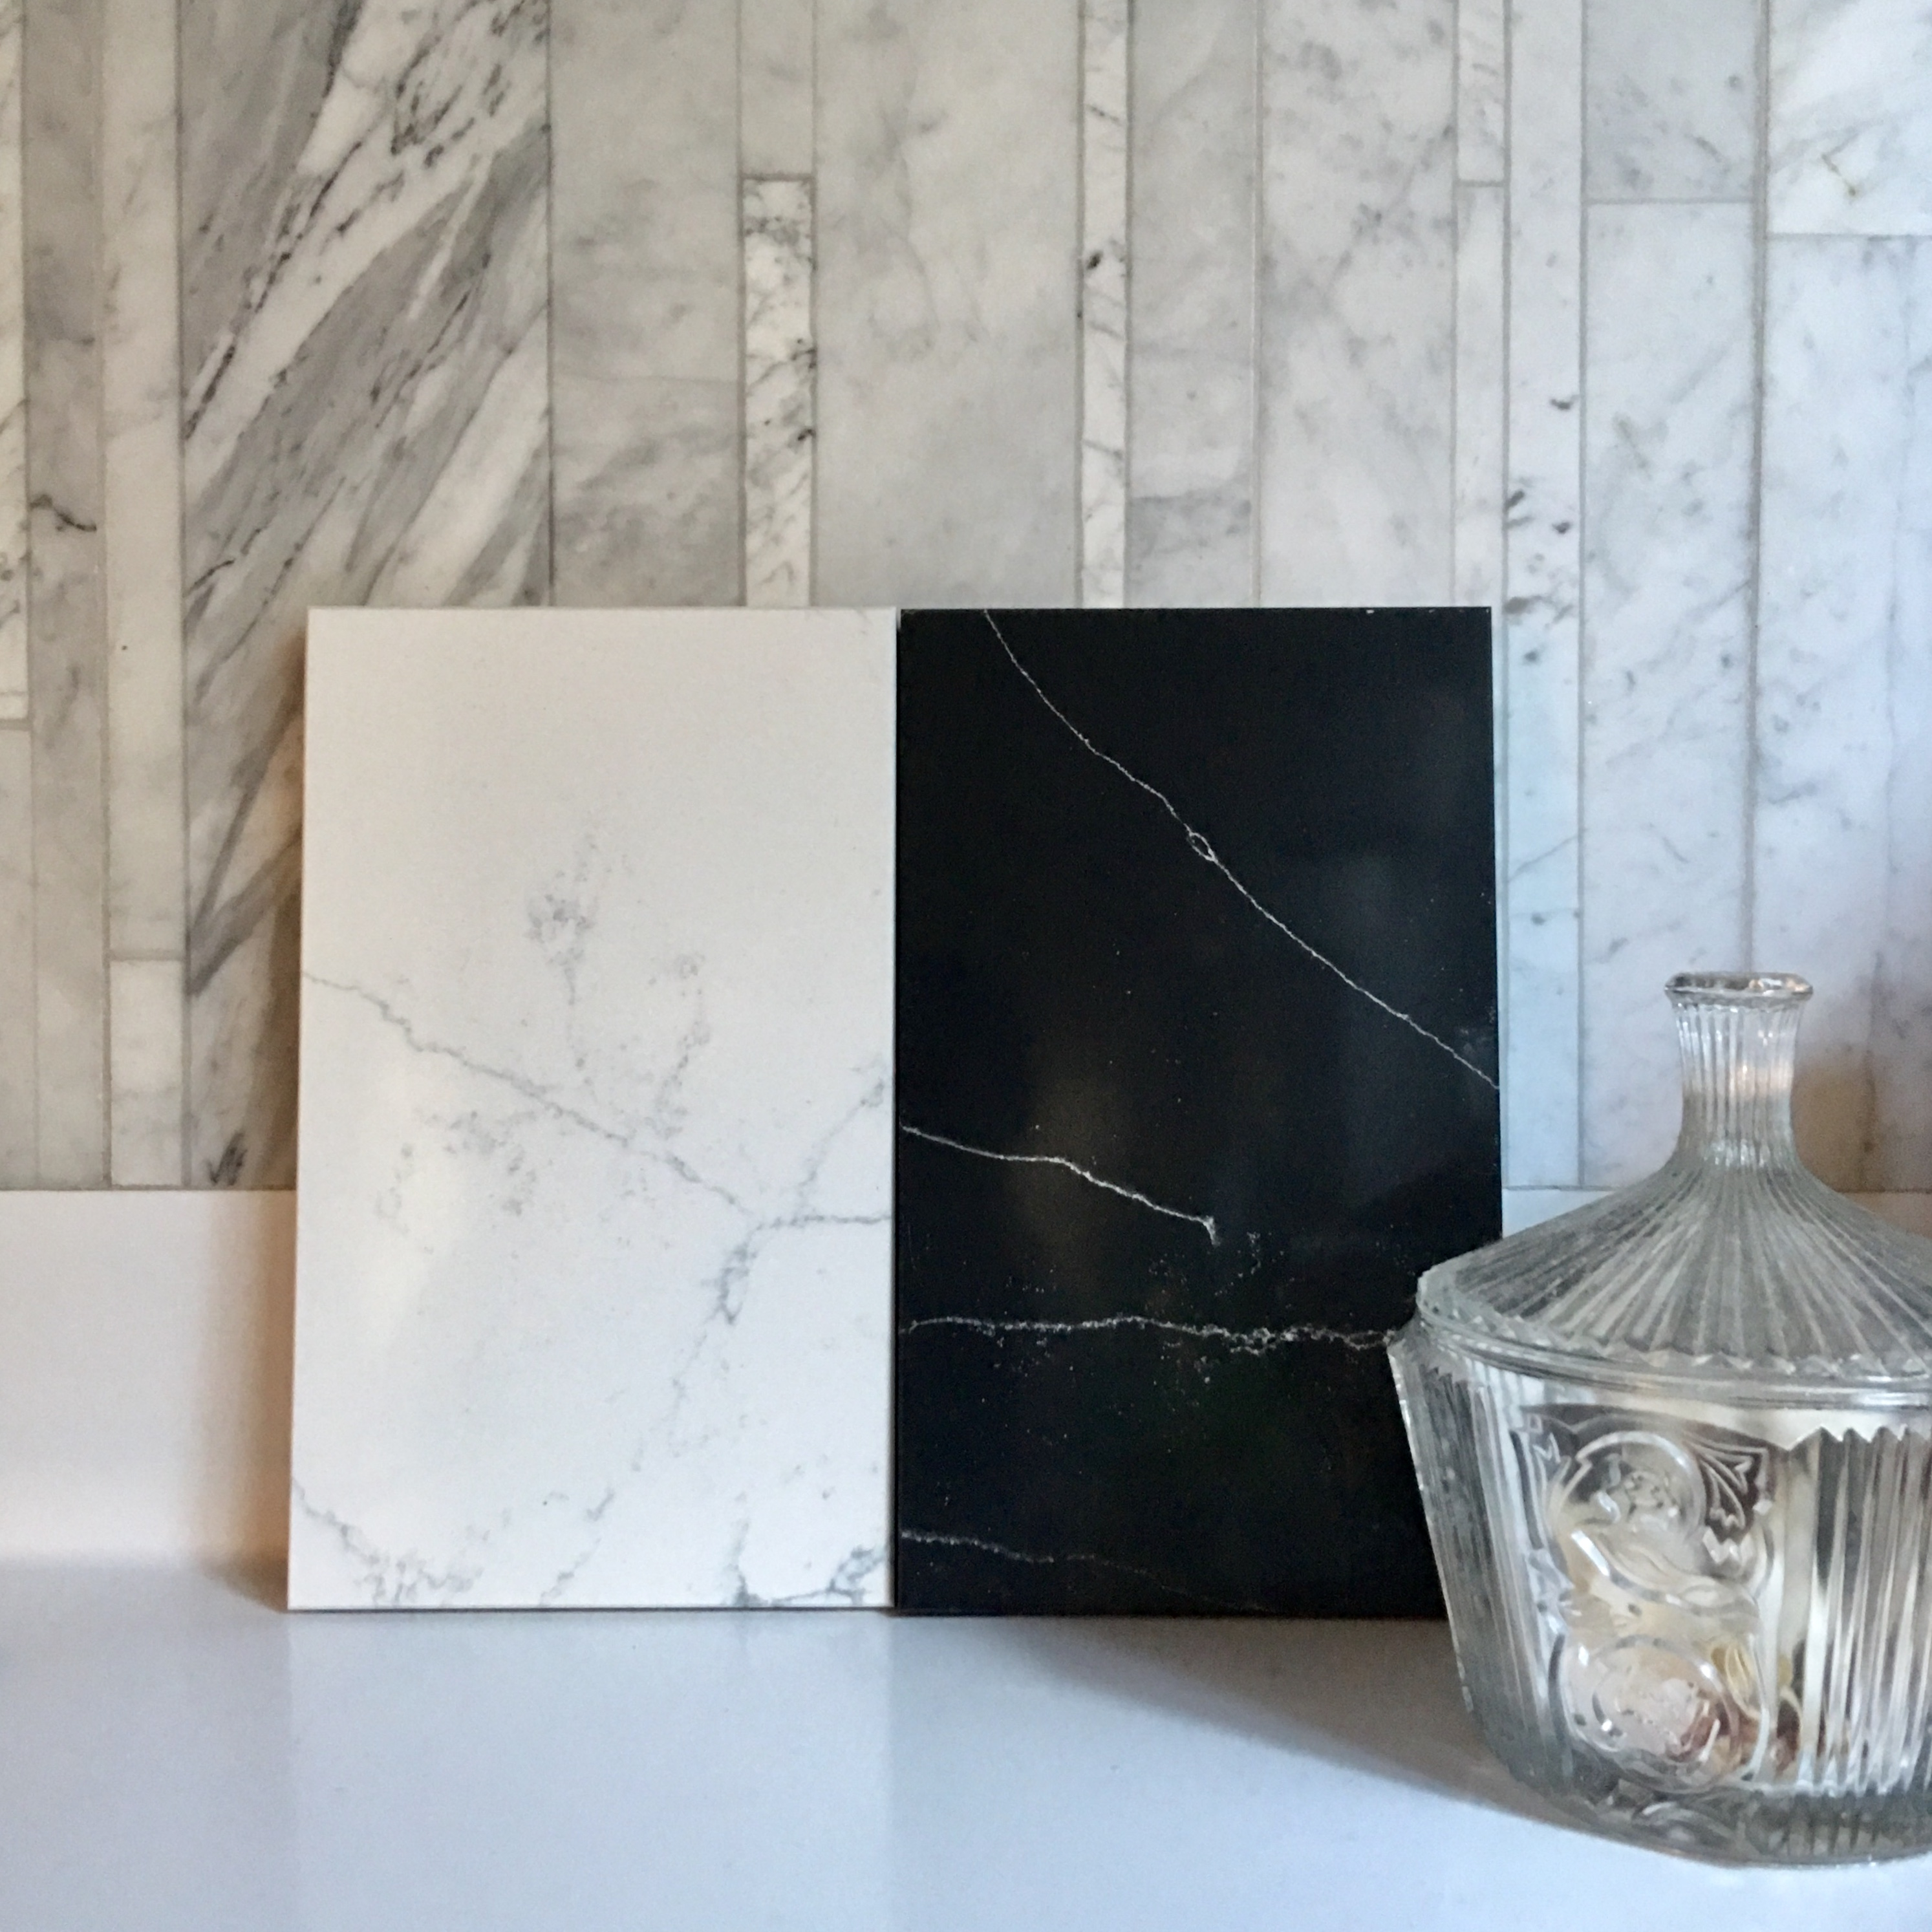 From the Compac 'Unique' collection of faux marble solid surfacing materials. Right: 'Unique Marquina' sample; Left 'Unique Venatino' sample, both shown against Salvatori Lithoverde marble.